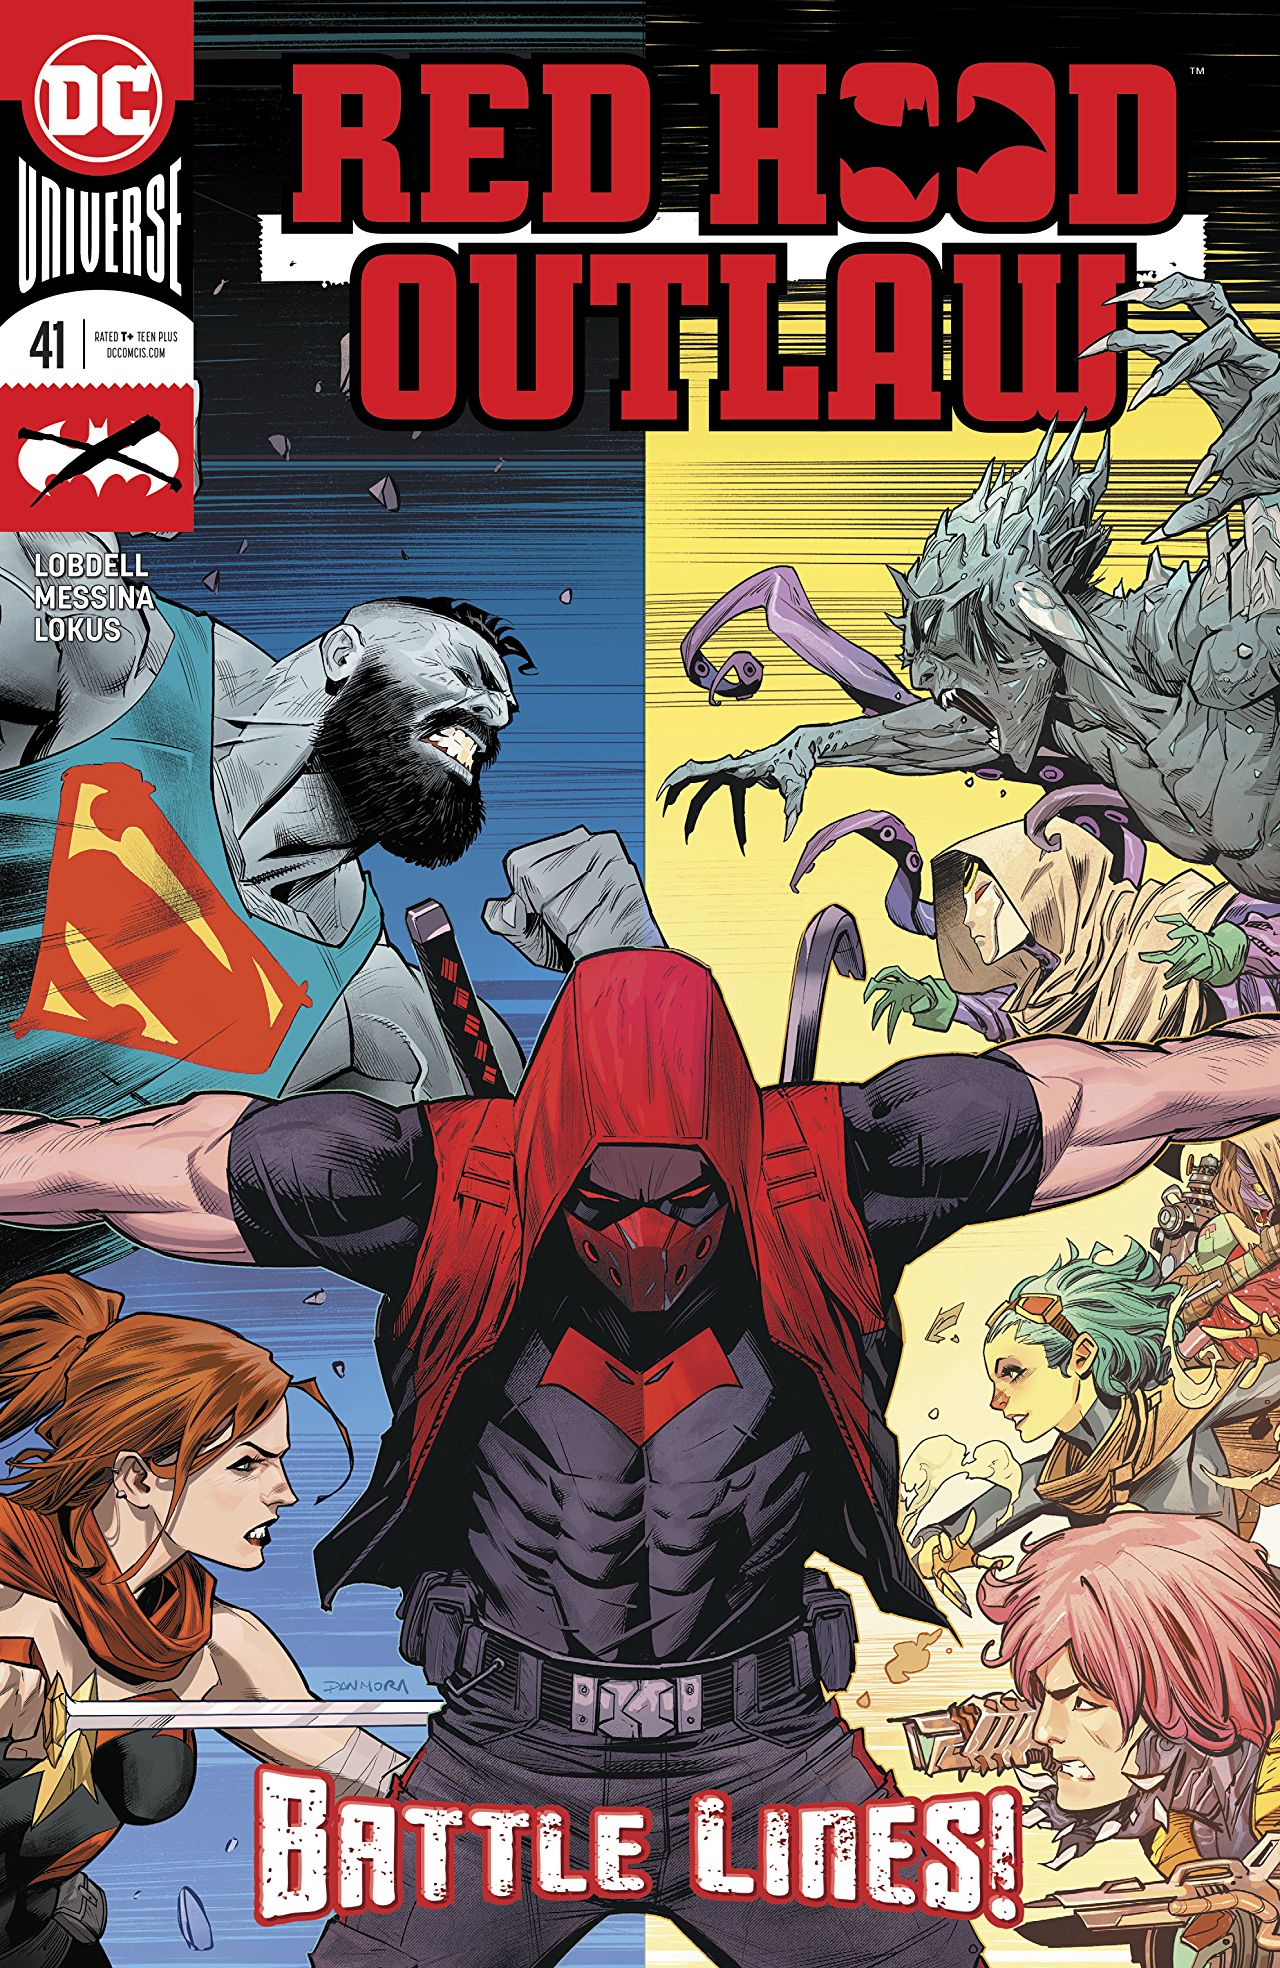 Red Hood Outlaw 41